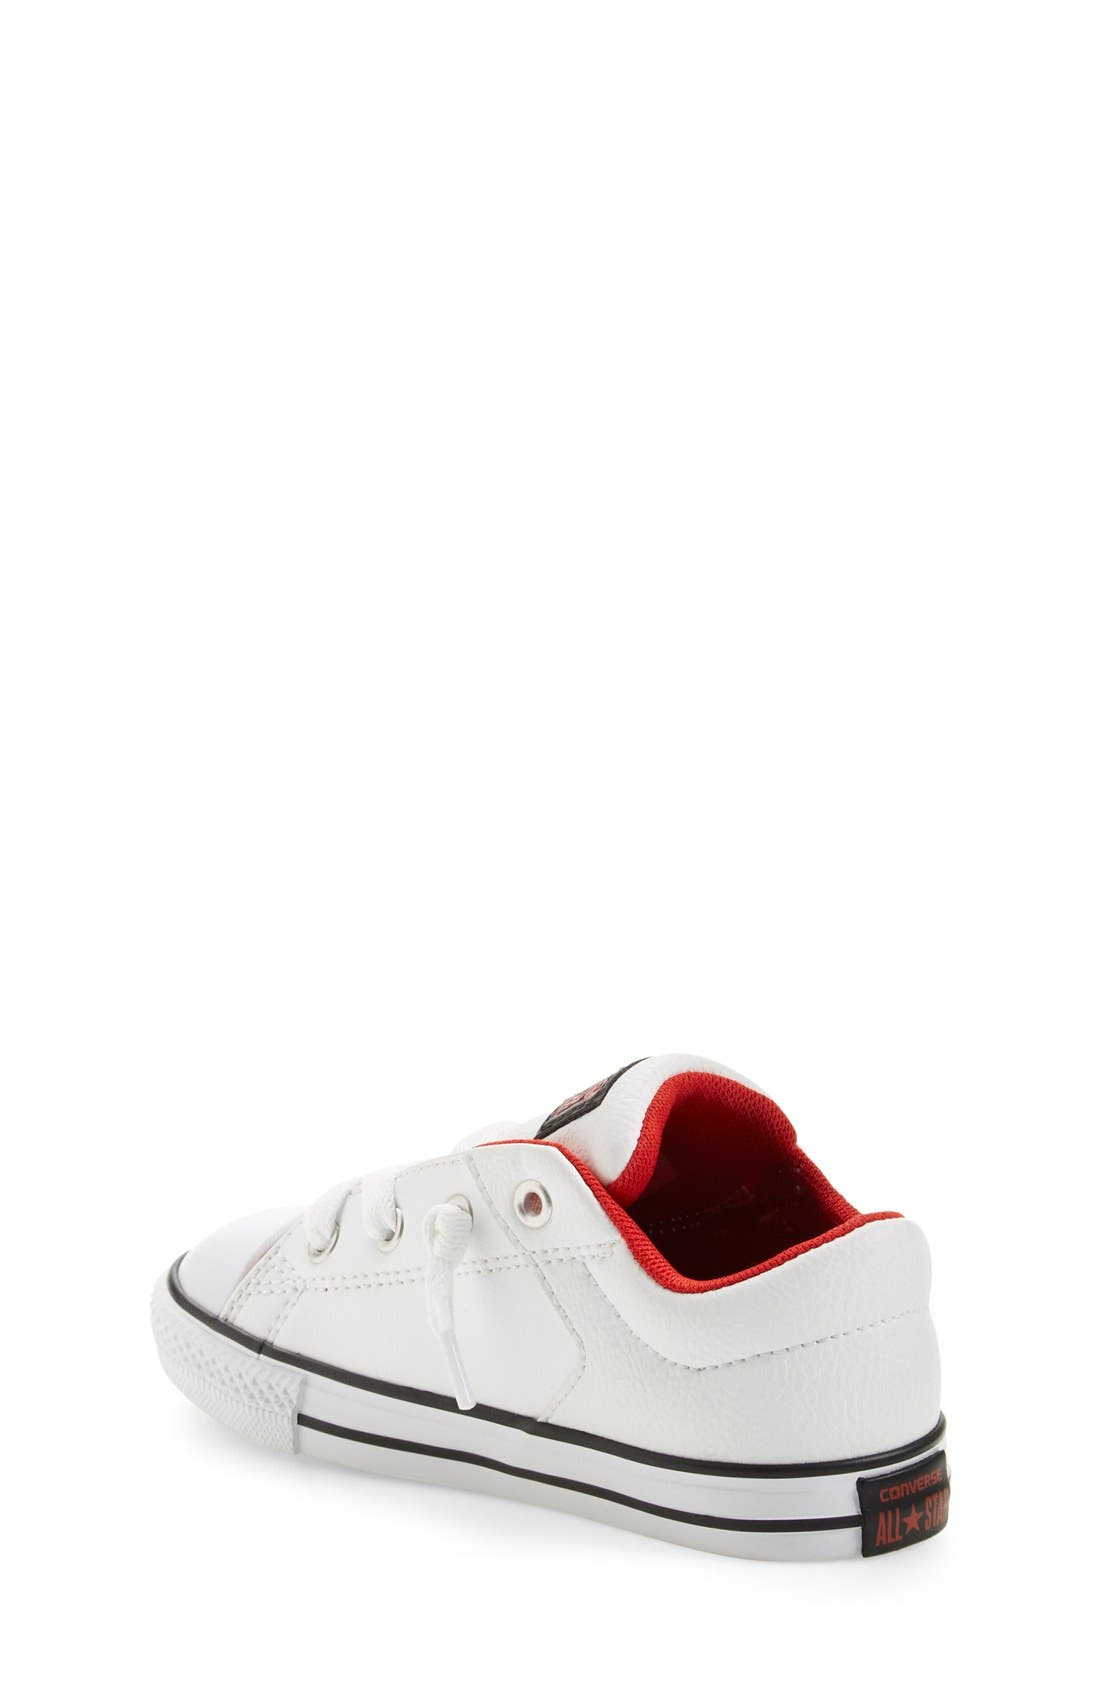 Chuck Taylor<sup>®</sup> All Star<sup>®</sup> 'High Street' Slip-On Sneaker,                             Alternate thumbnail 16, color,